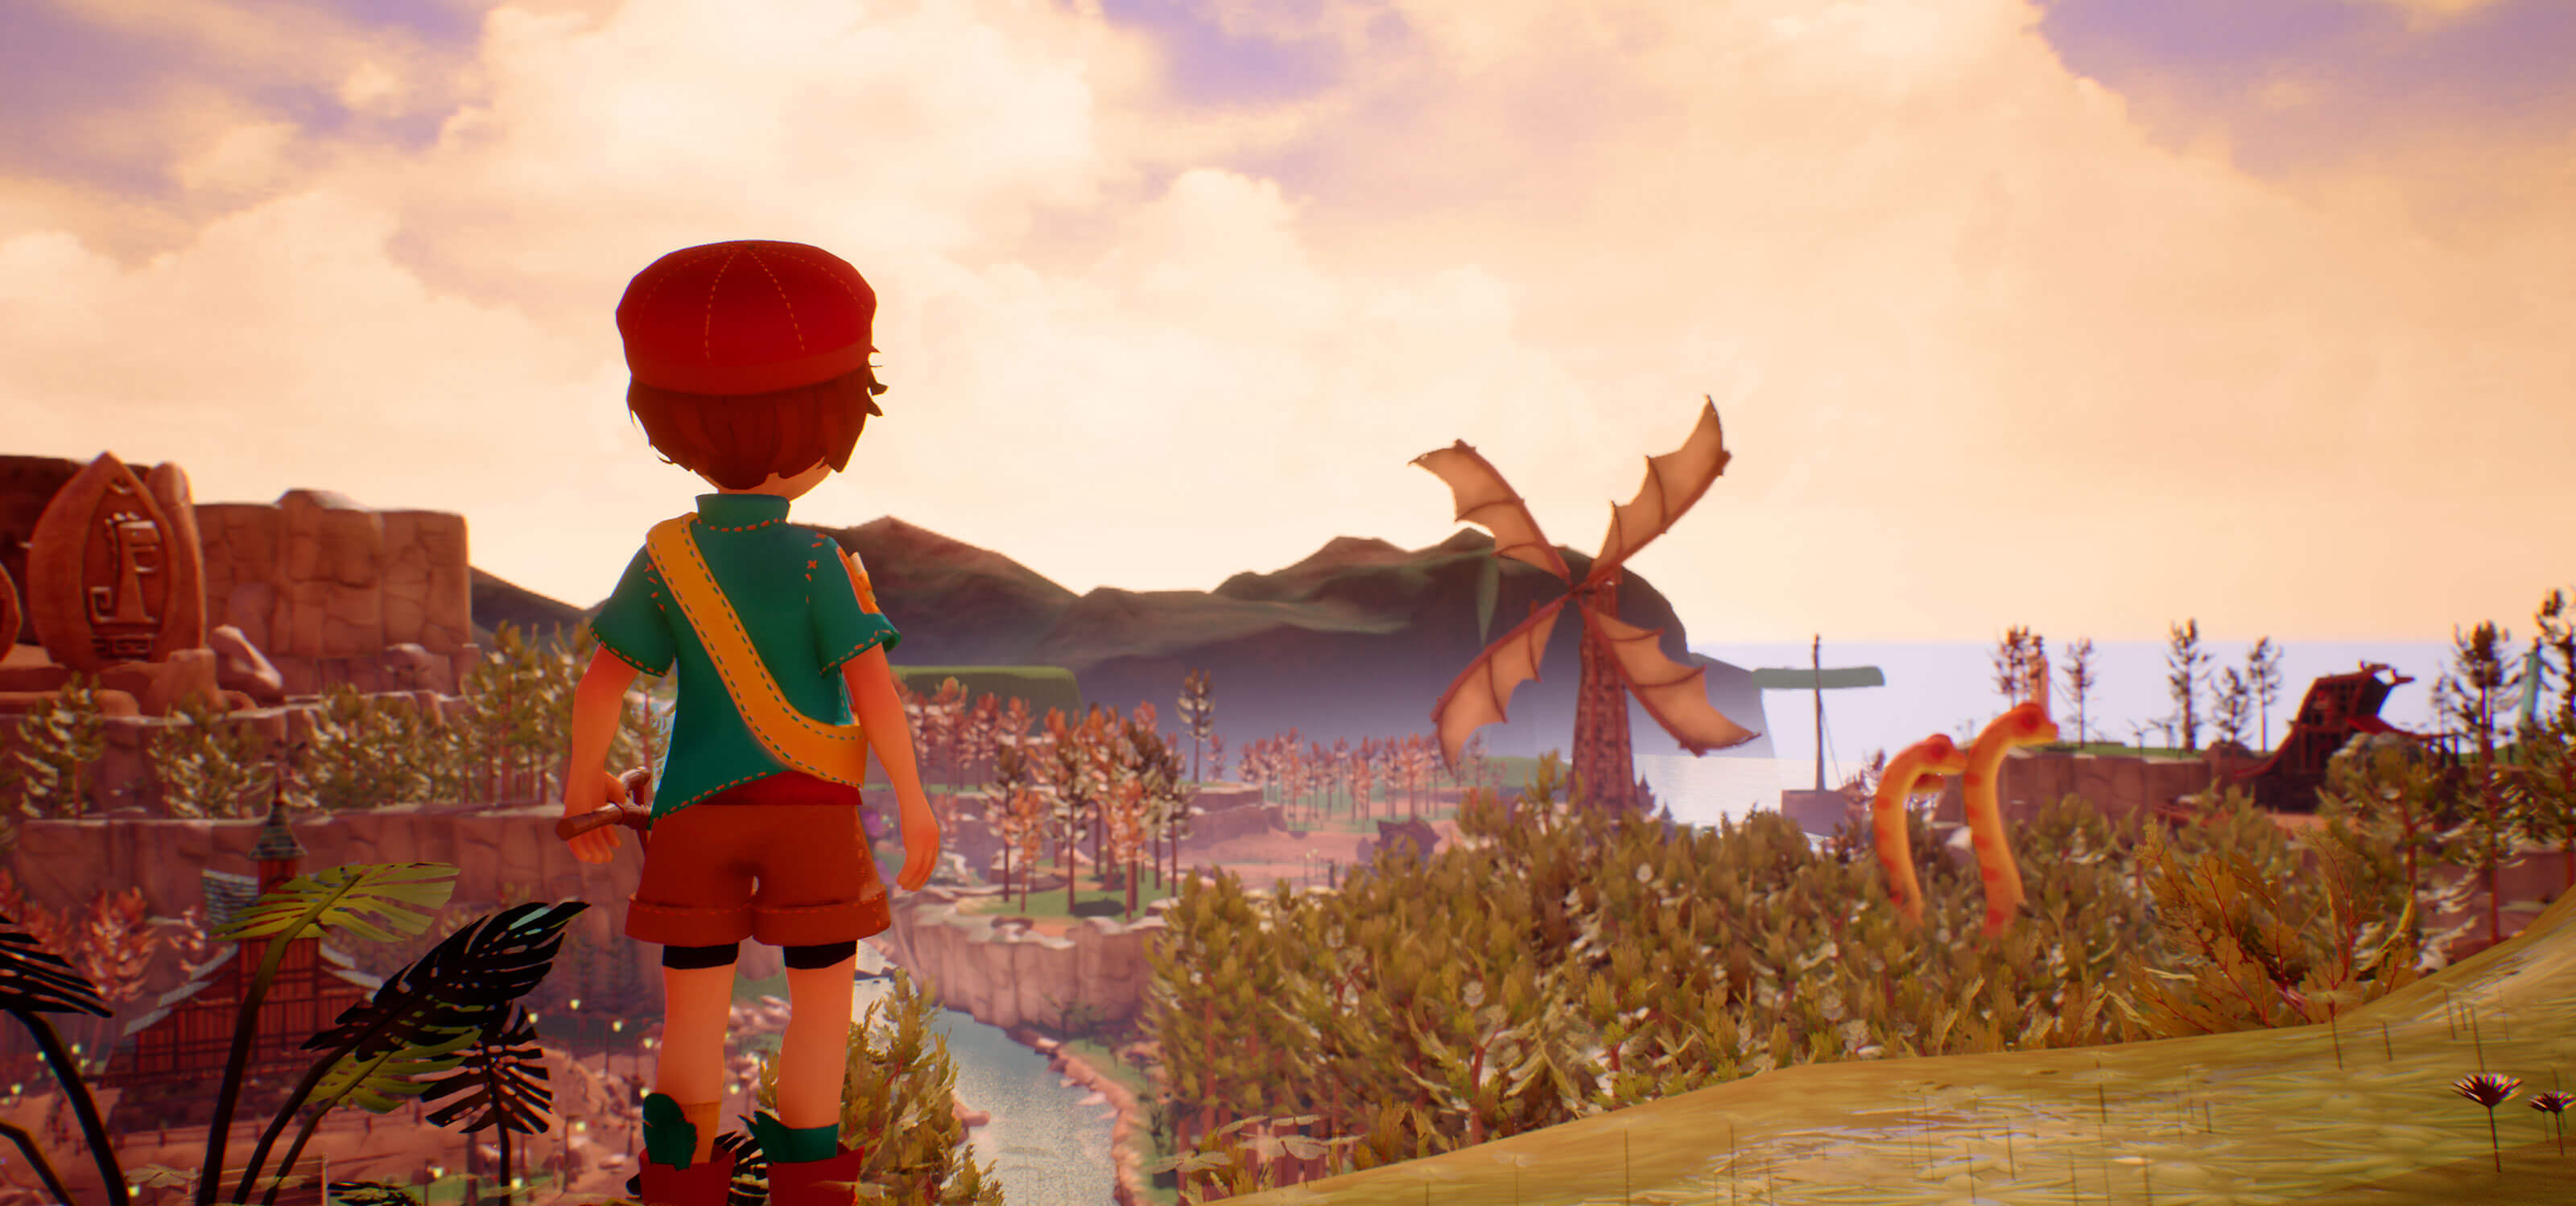 A boy looks out over a prehistoric valley landscape.